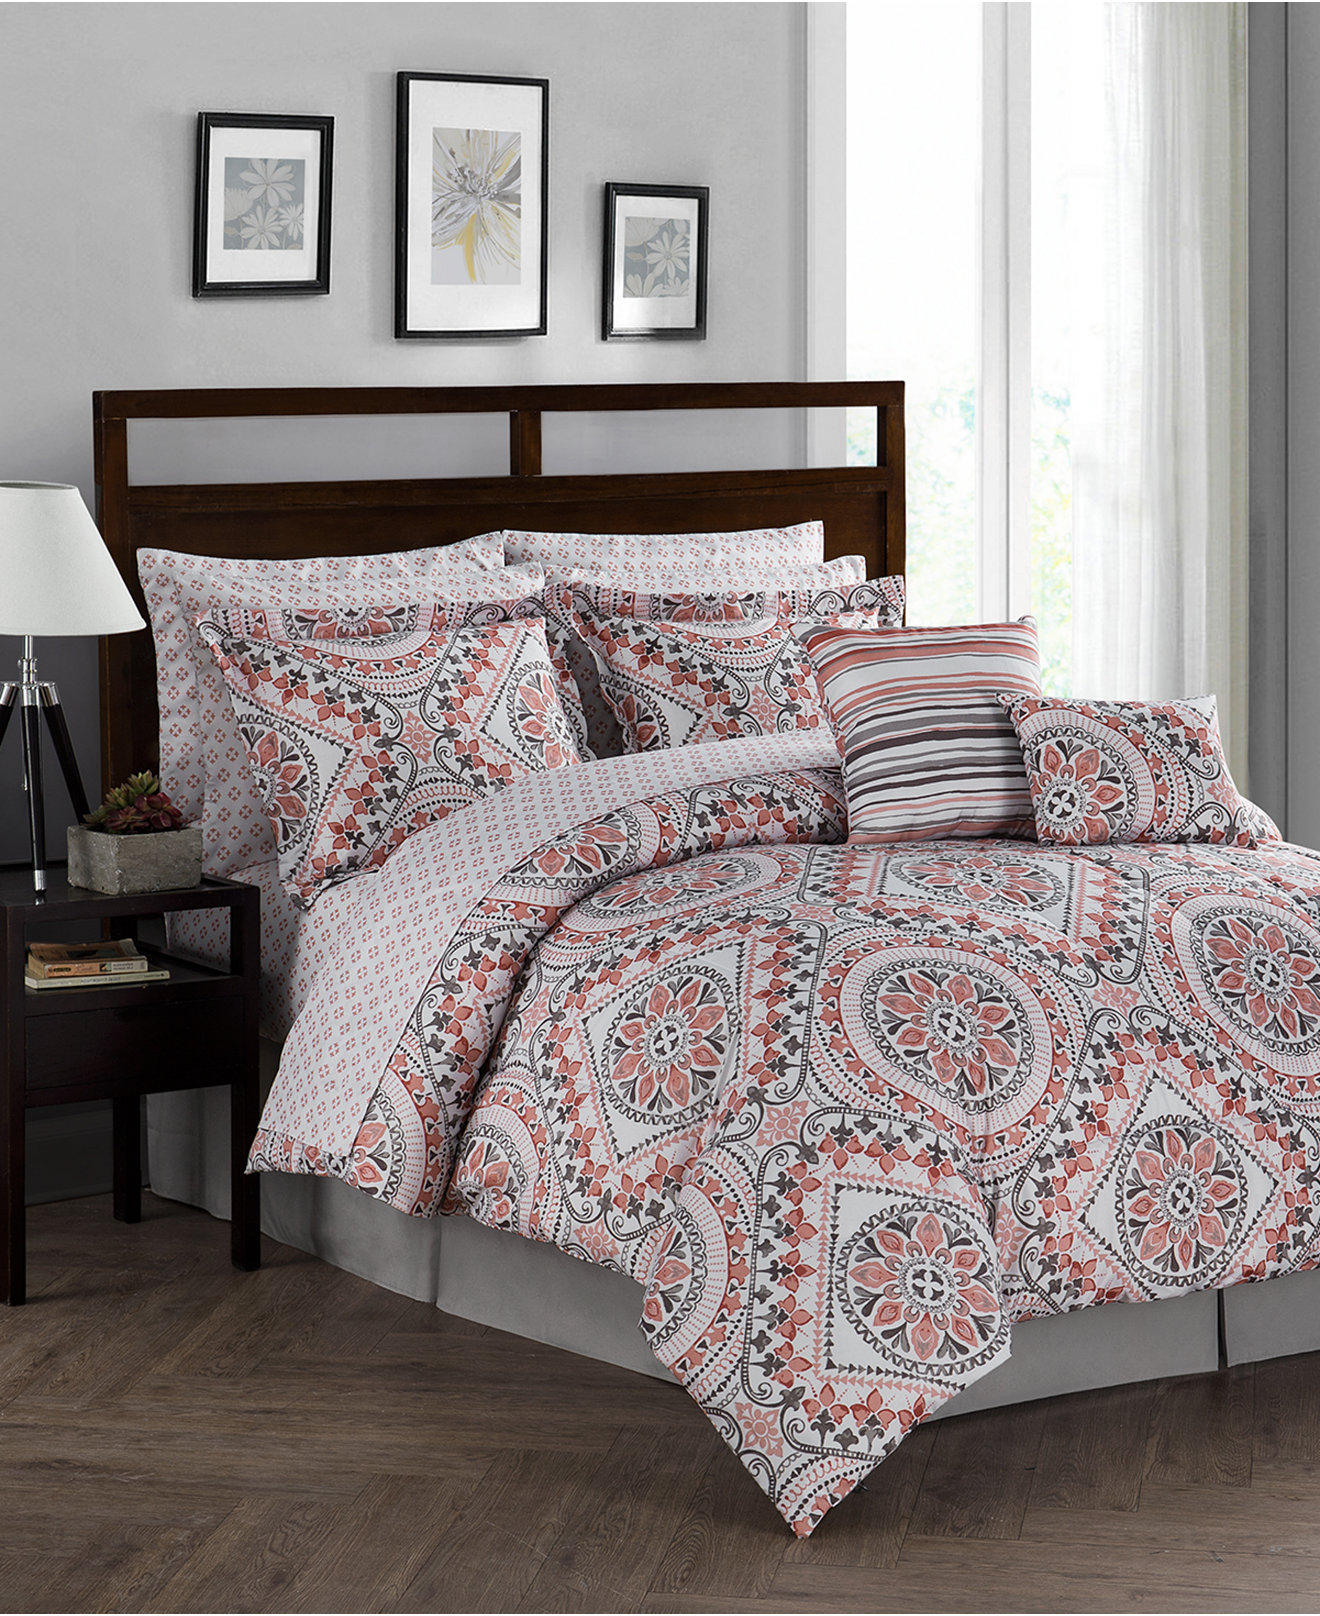 Bedding sets for women - Seville Reversible 12 Pc Comforter Sets